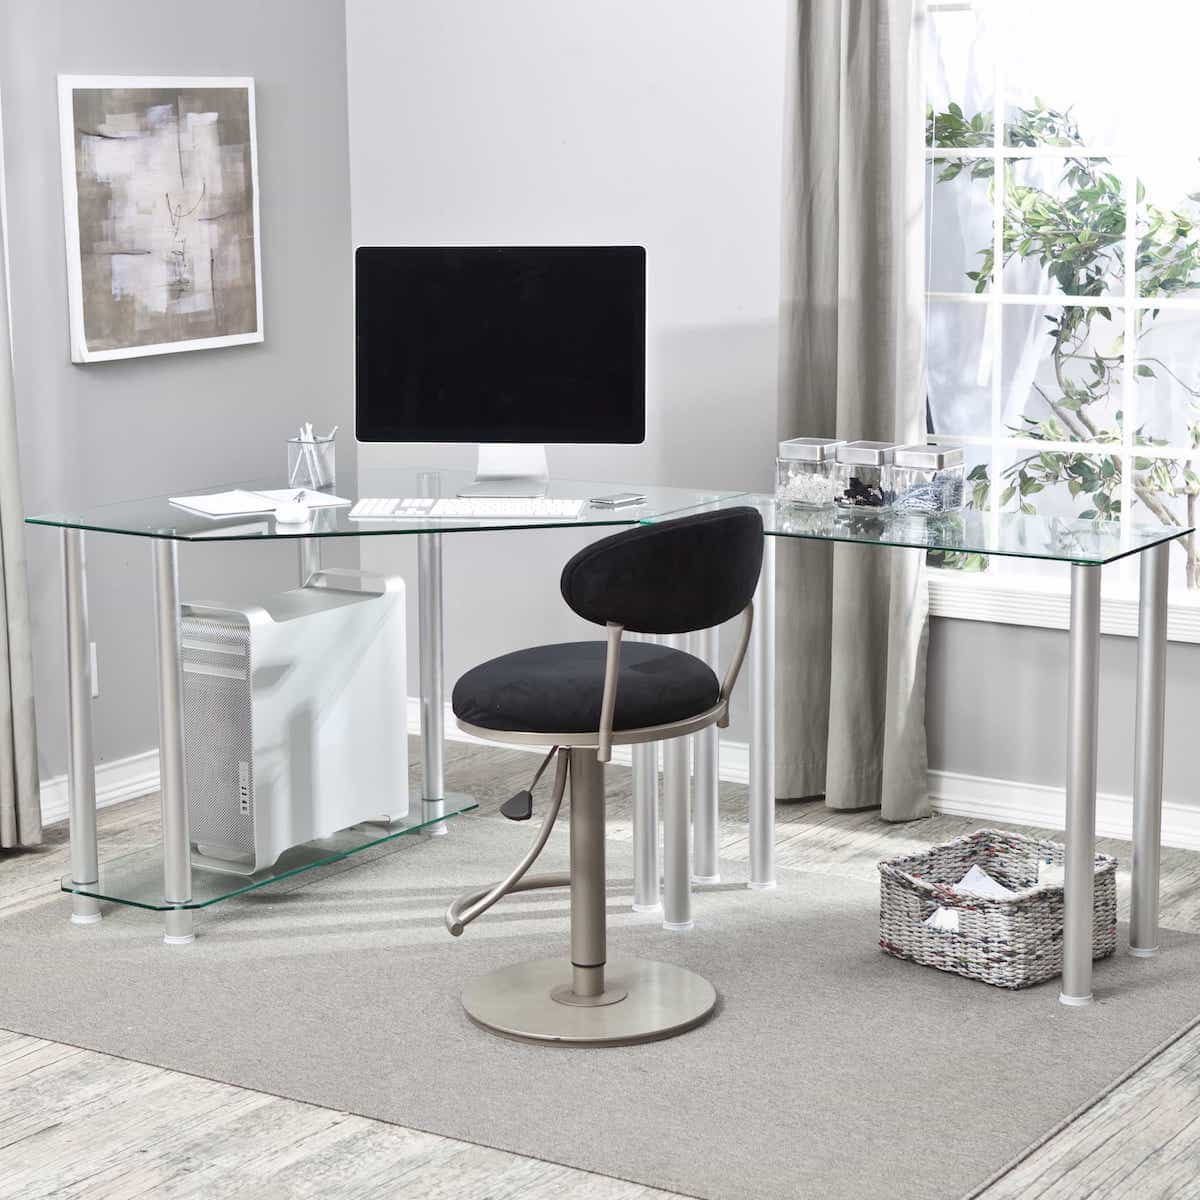 Modern Glass L Shaped Computer Desk With Chrome Finishing For Modern Home Office (Image 4 of 8)